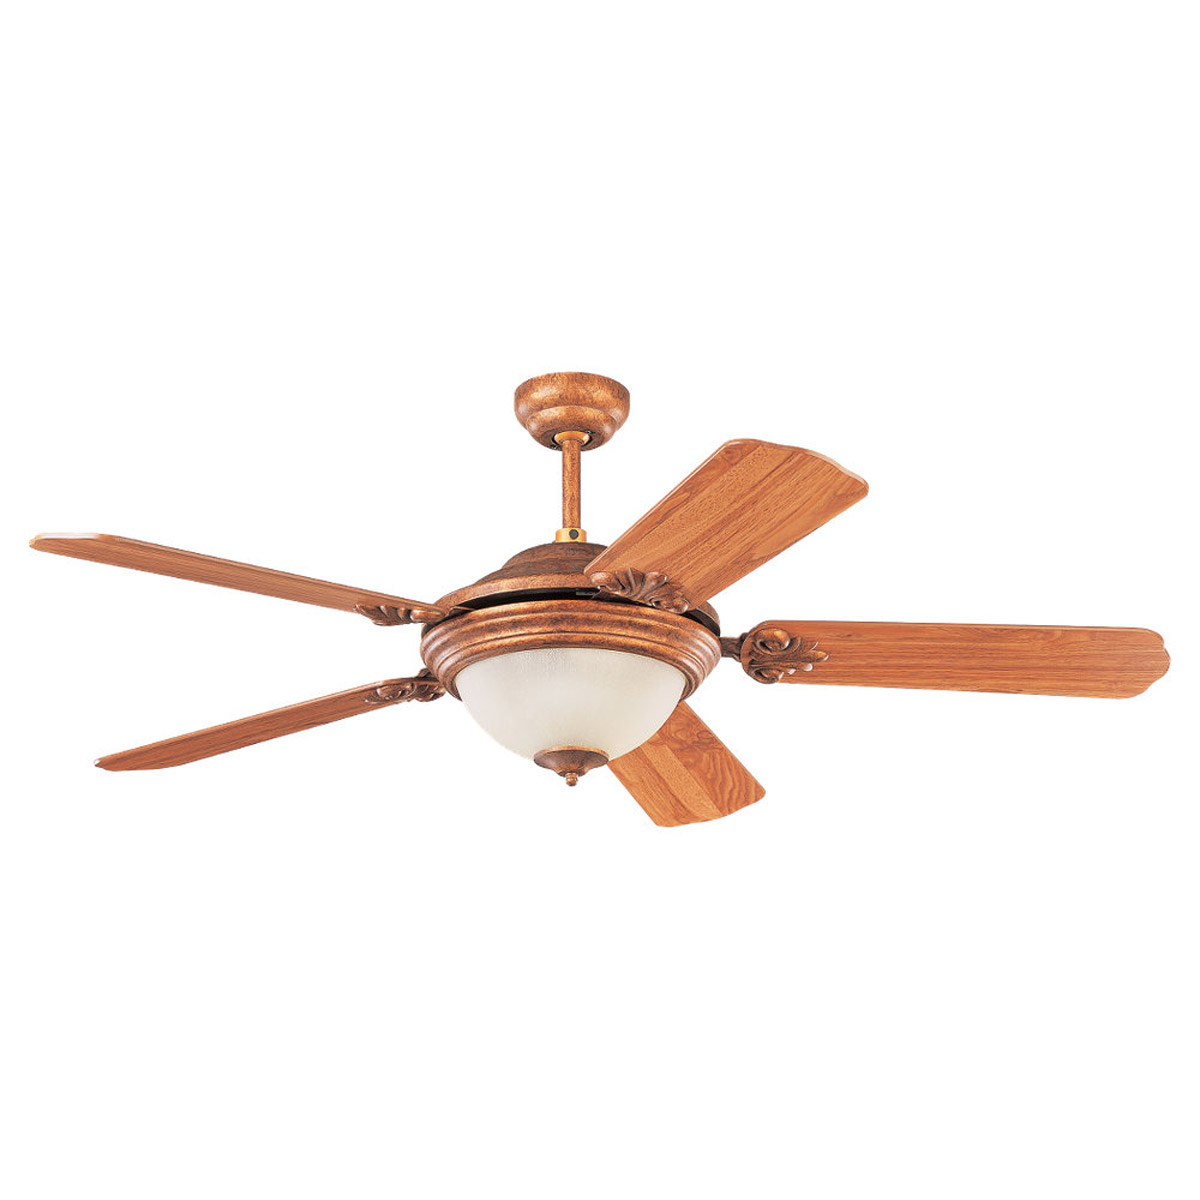 Sea Gull Lighting 3 Light 52in Highlands Ceiling Fan in Regal Bronze 15358B-758